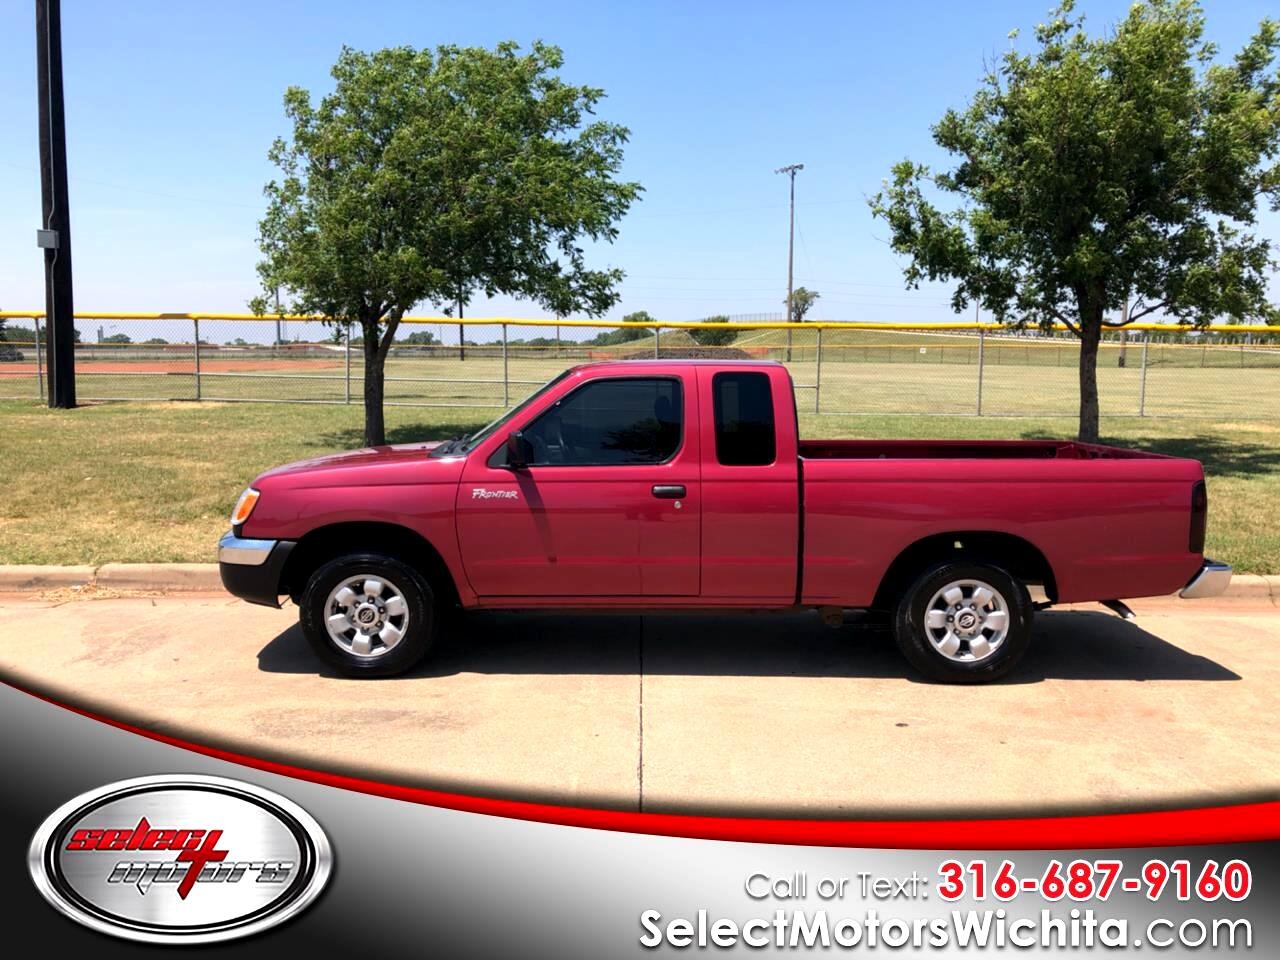 1999 Nissan Frontier 2WD XE King Cab Auto